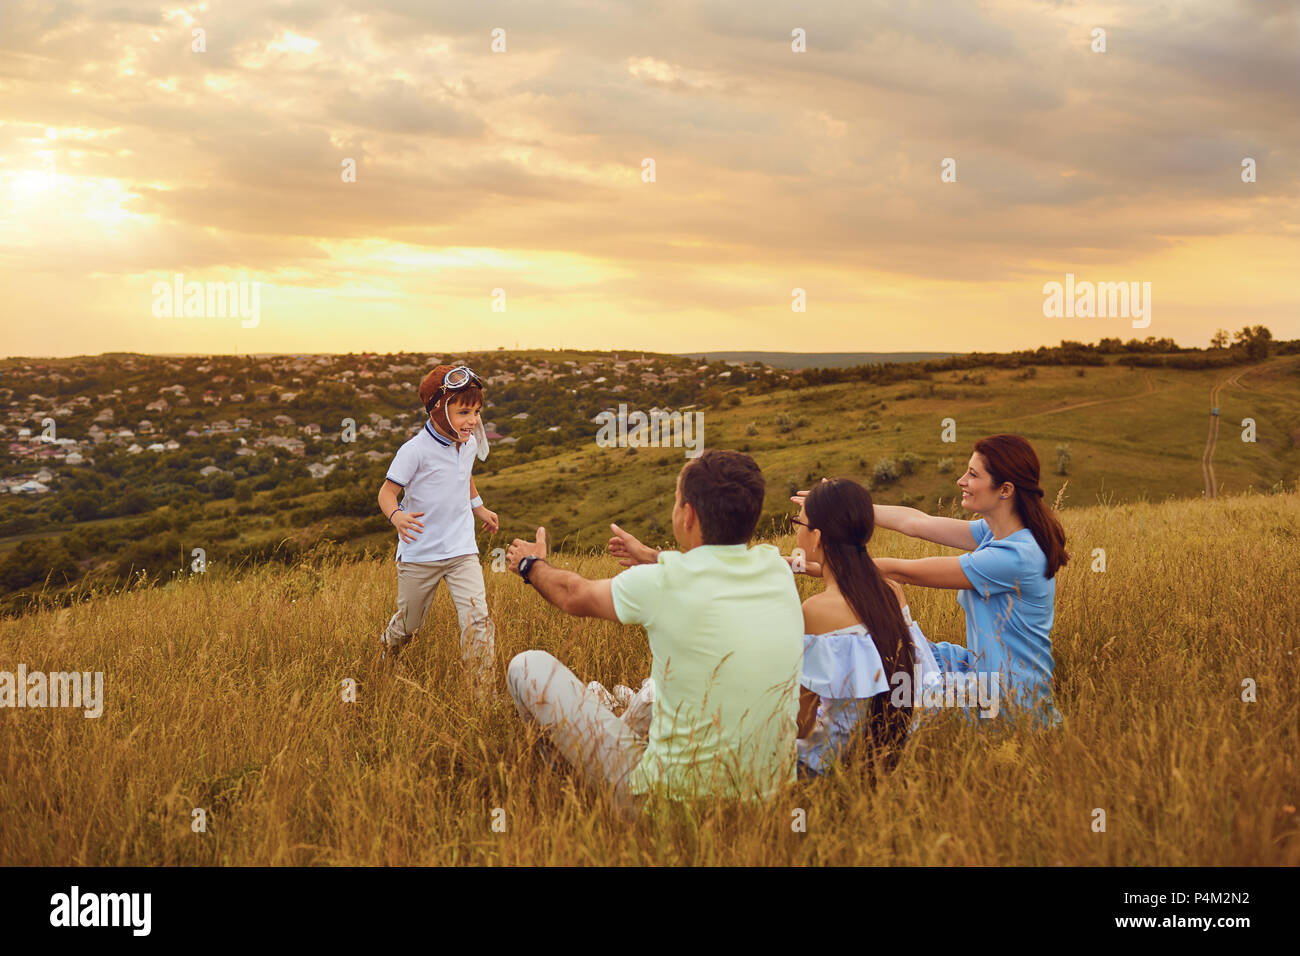 Happy family having fun playing on grass in nature. - Stock Image